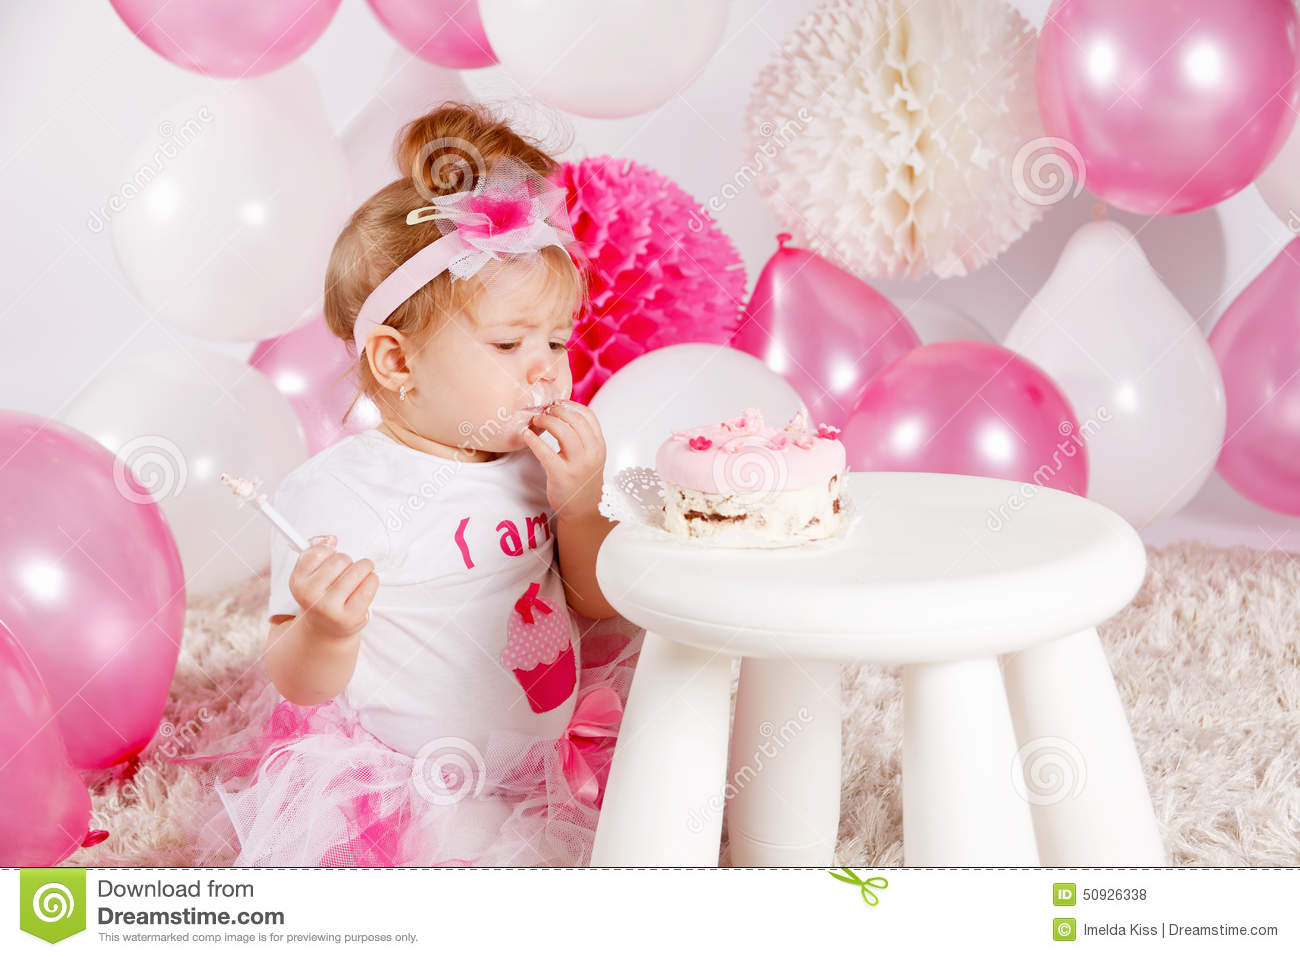 Baby Eating The Birthday Cake Stock Photo - Image: 50926338